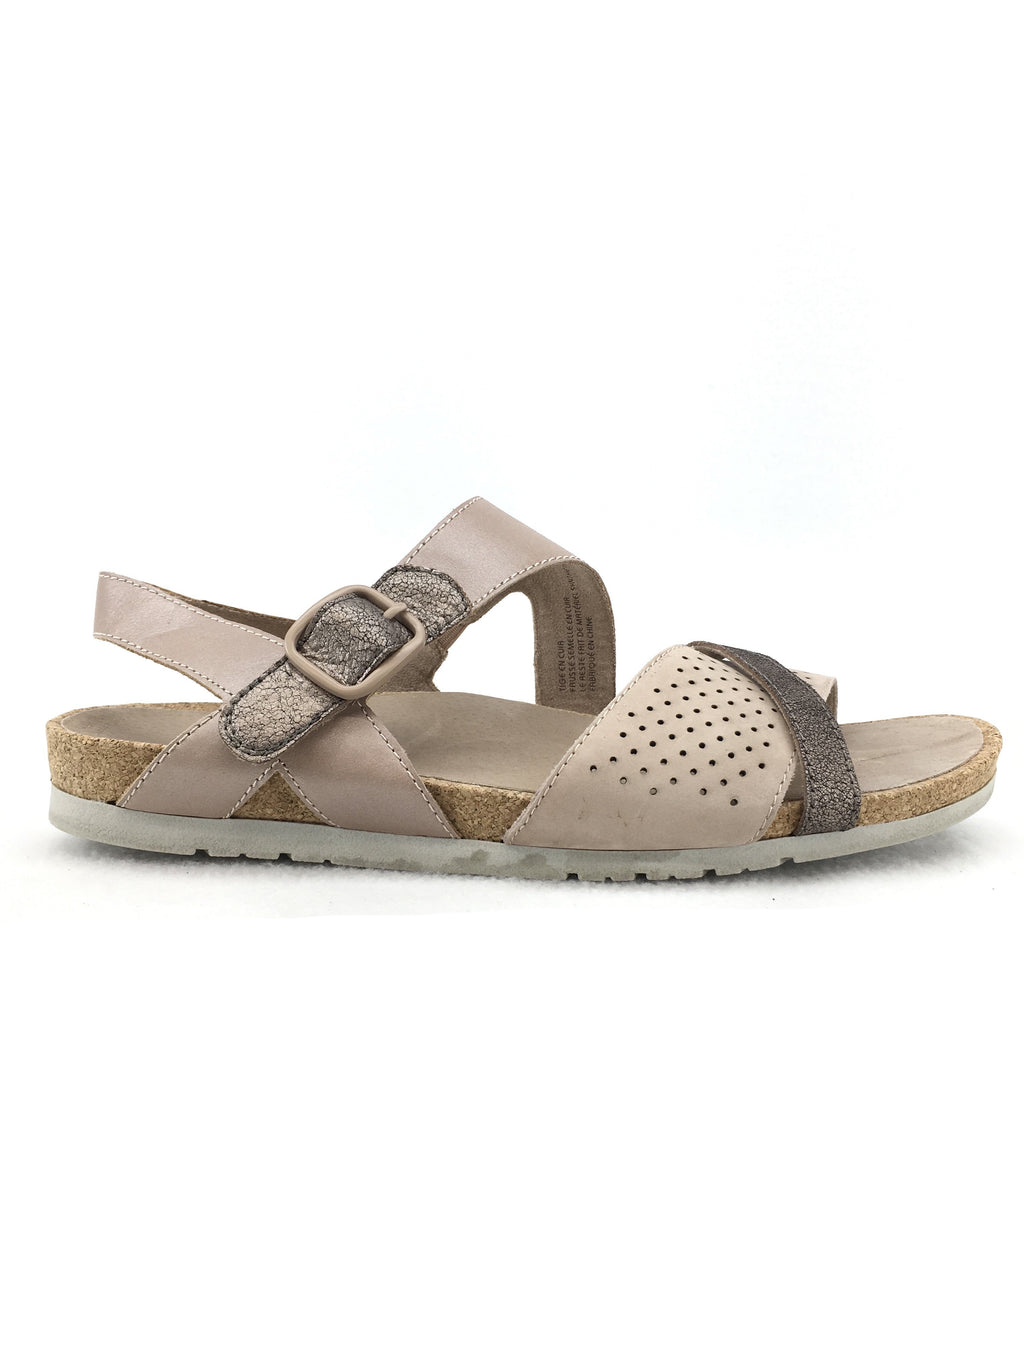 Earth Comfort Sandals Size 9W